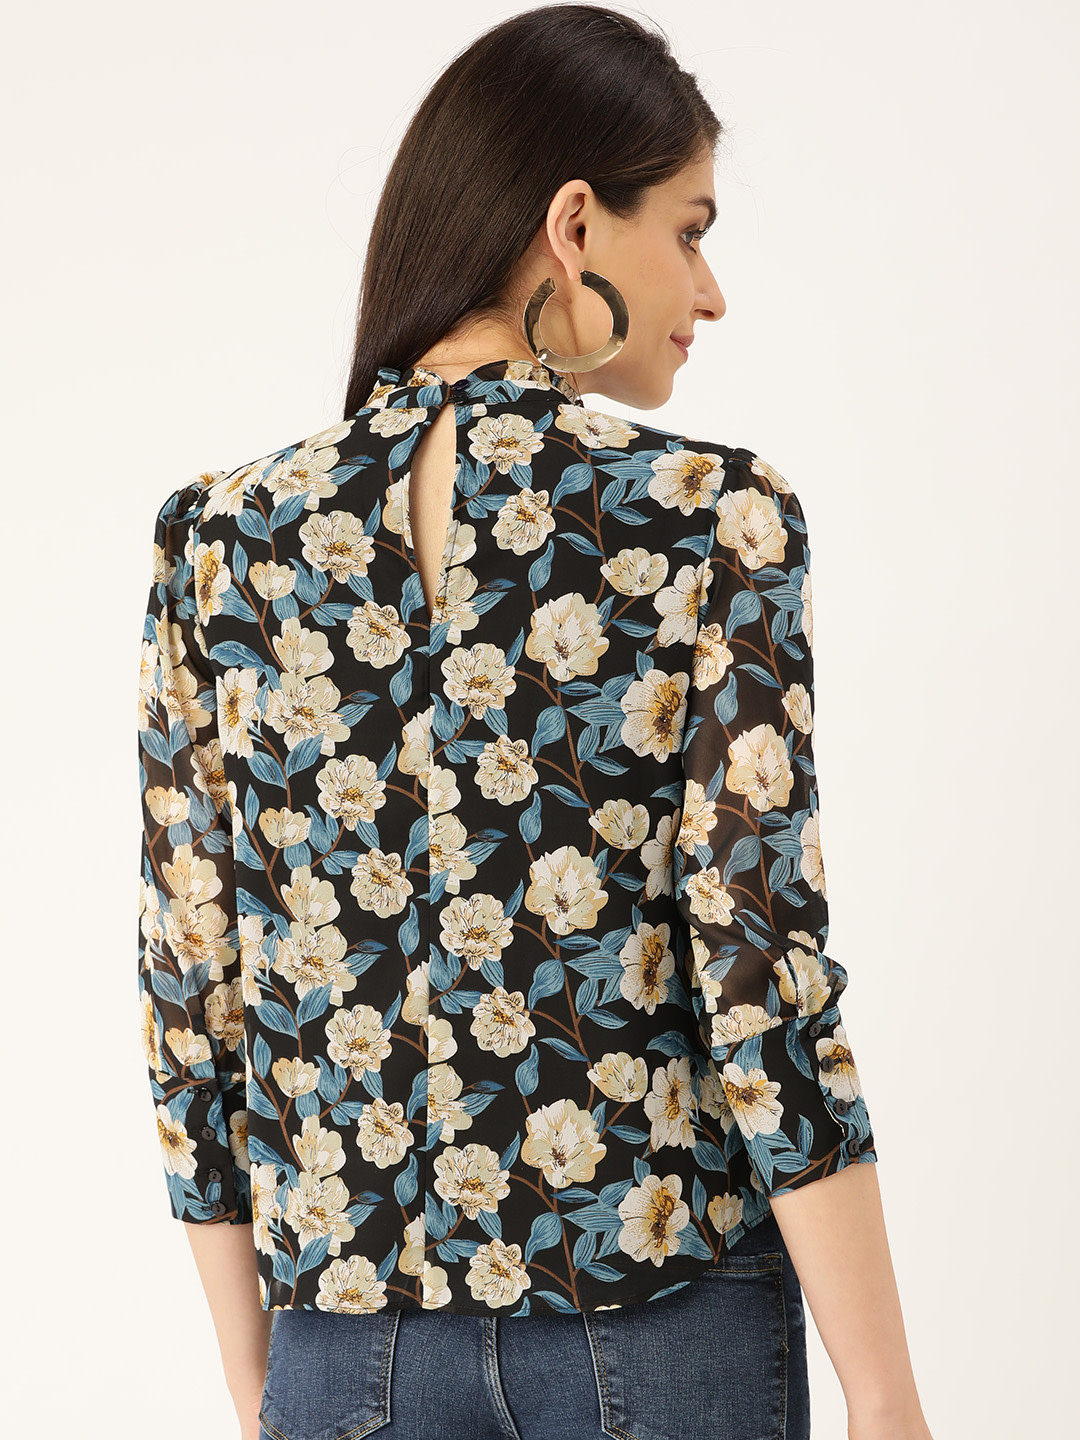 Tops-Lost In The Floral Ruffle Top3